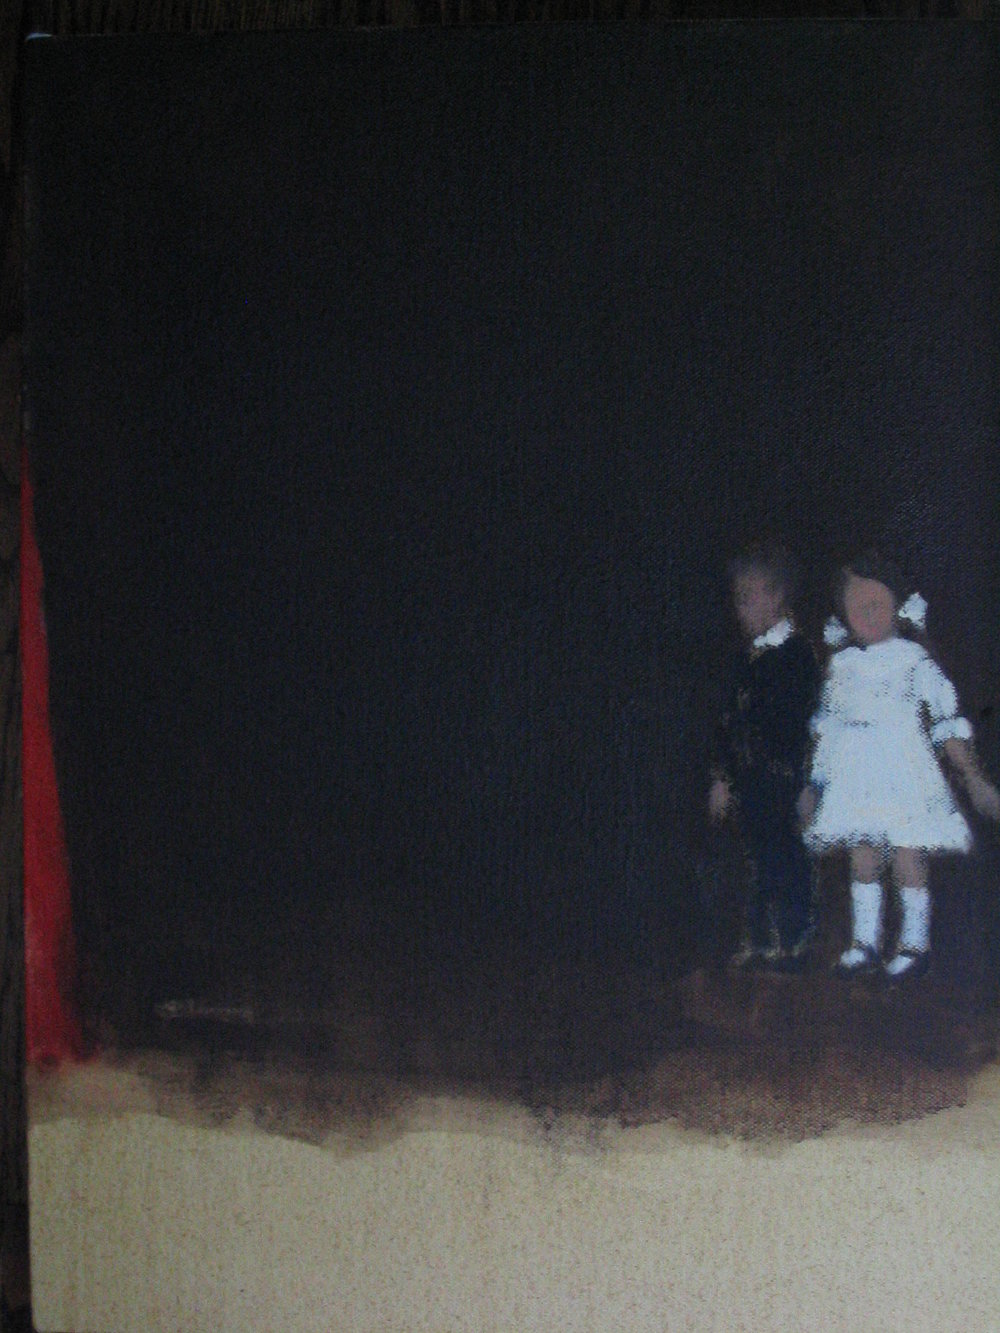 Crimson (hold tight) oil on canvas 14 x 11 in. 2005